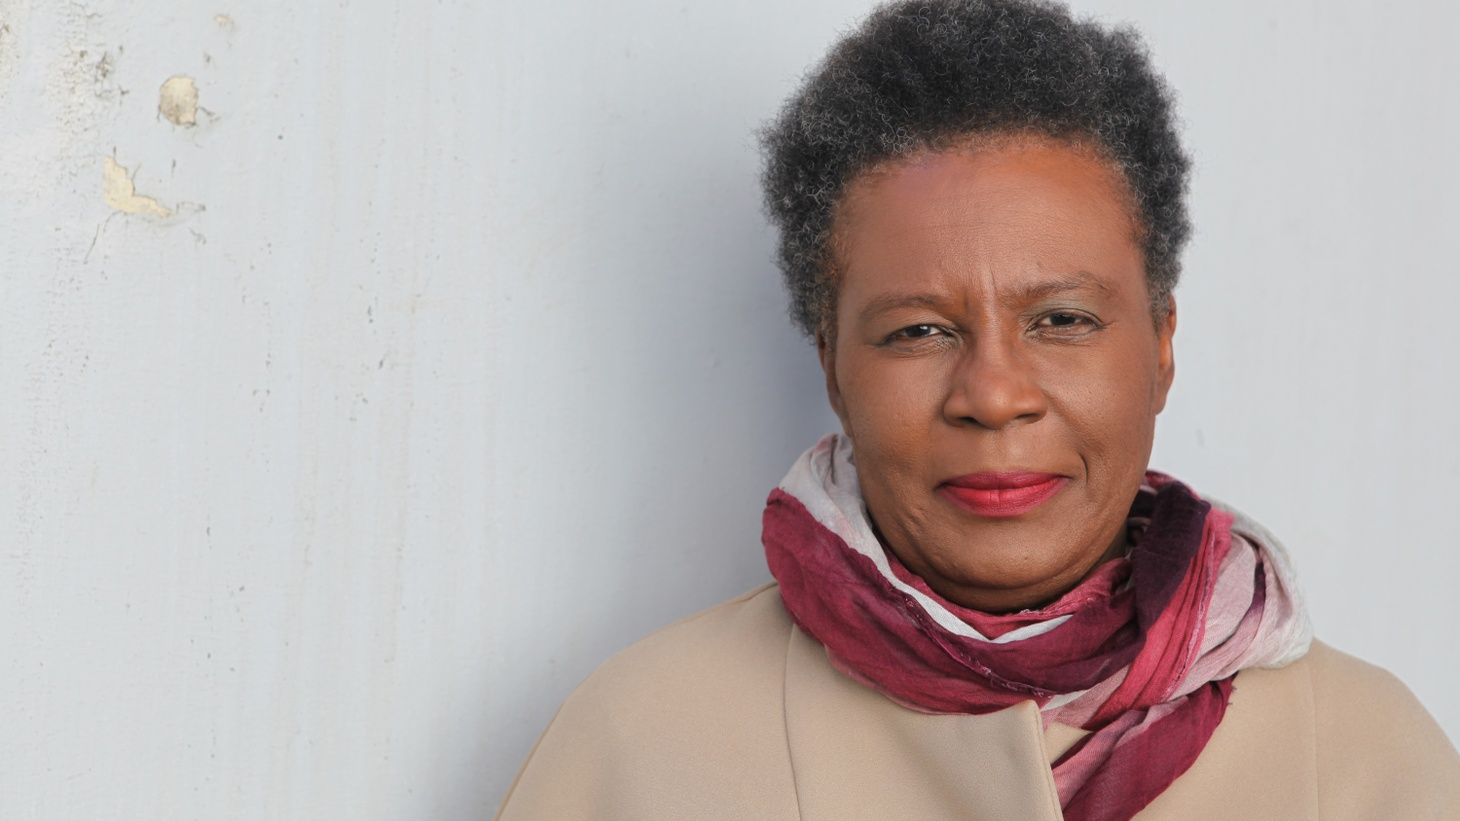 In discussing Claudia Rankine's Citizen, an American Lyric, we discuss the way racism catches us all.